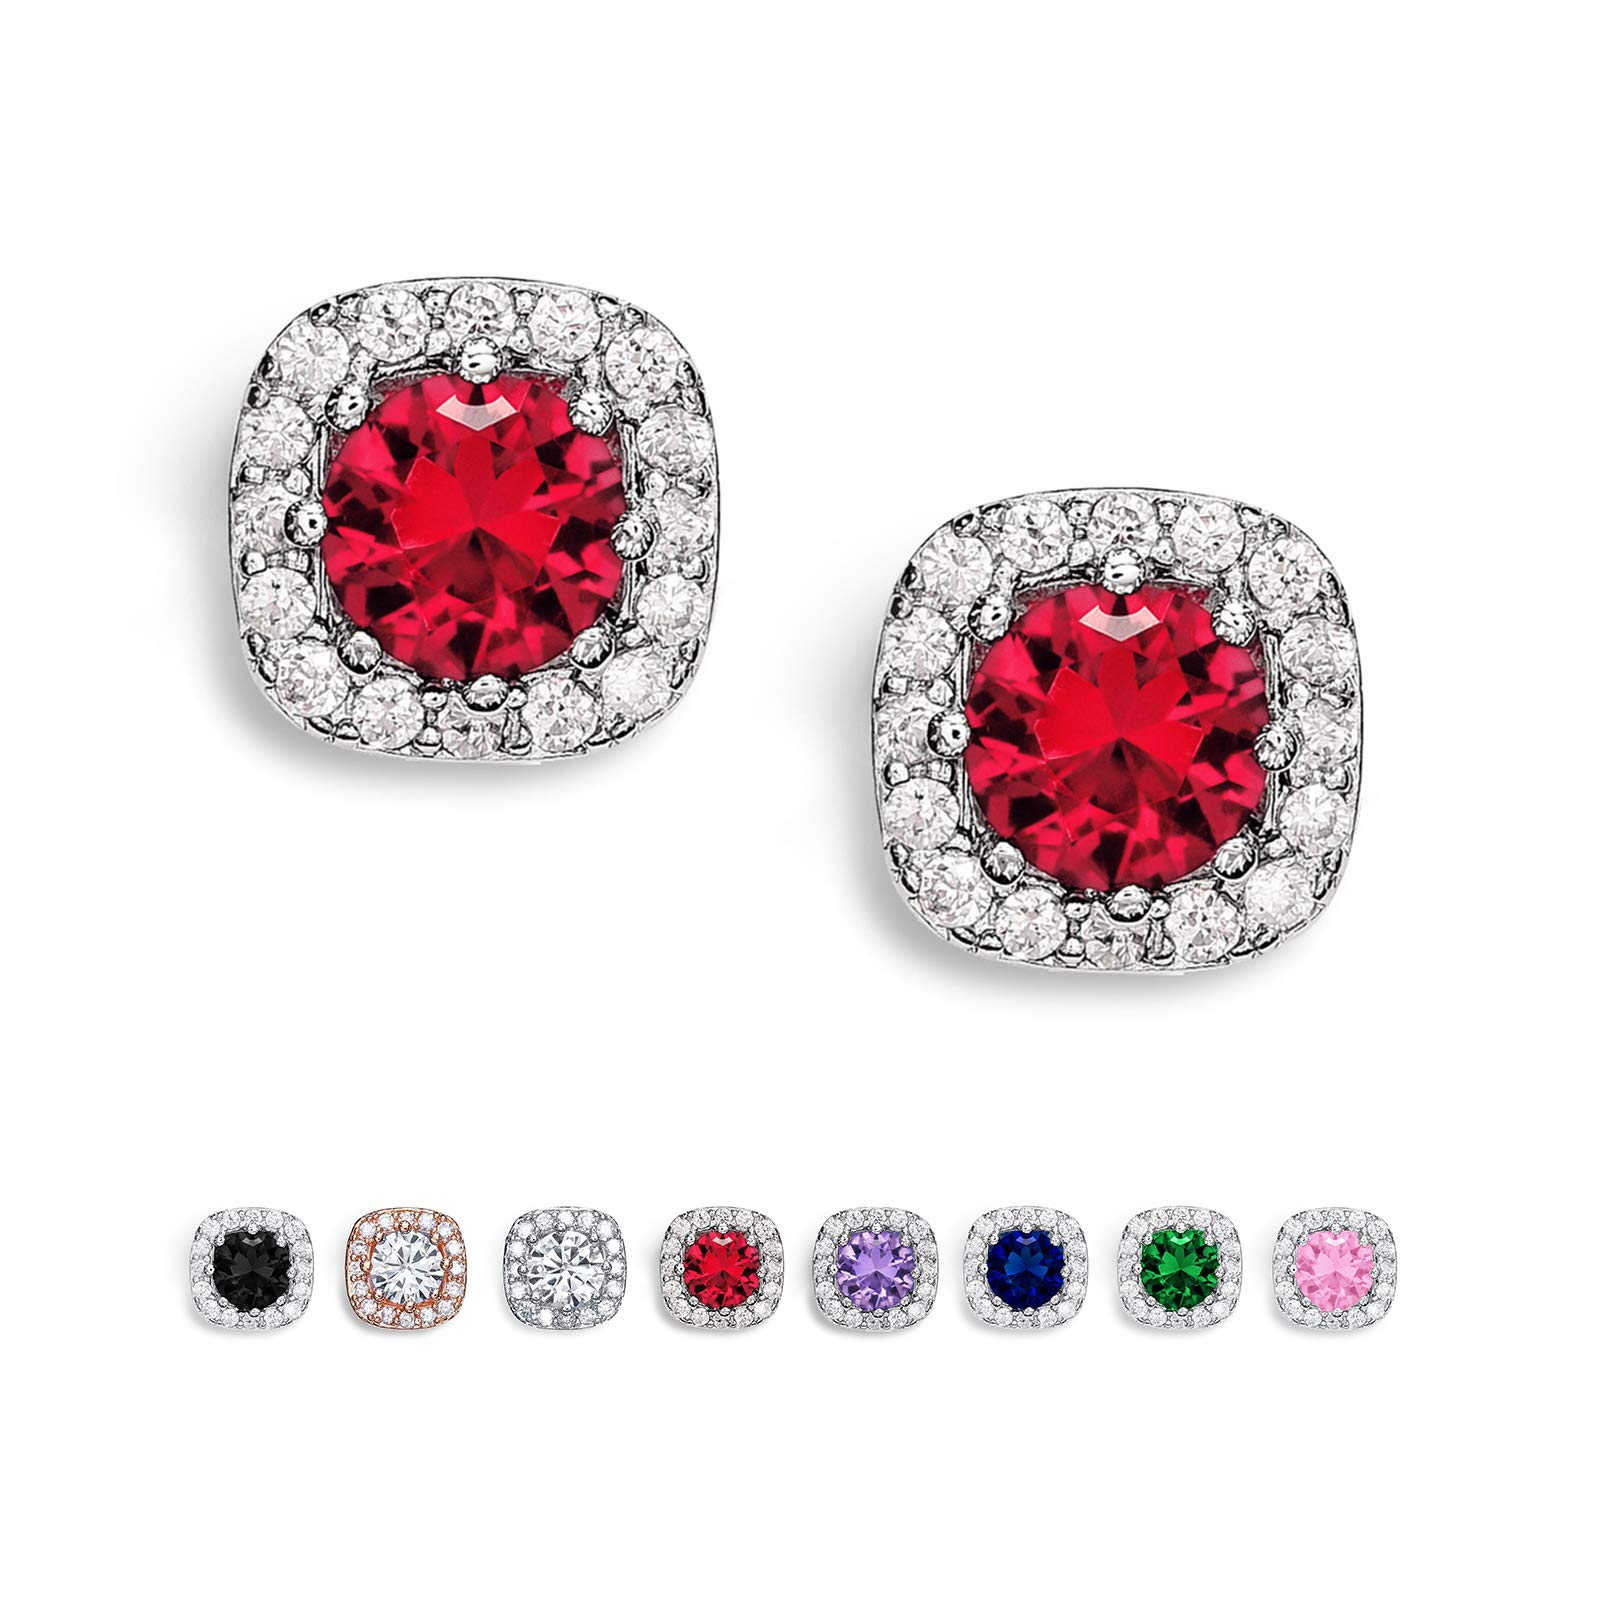 SWEETV Cubic Zirconia Stud Earrings for Women, Girls-Cushion CZ Rhinestone Hypoallergenic Earrings for Party, Prom, Everyday,Jewelry Gifts,Ruby